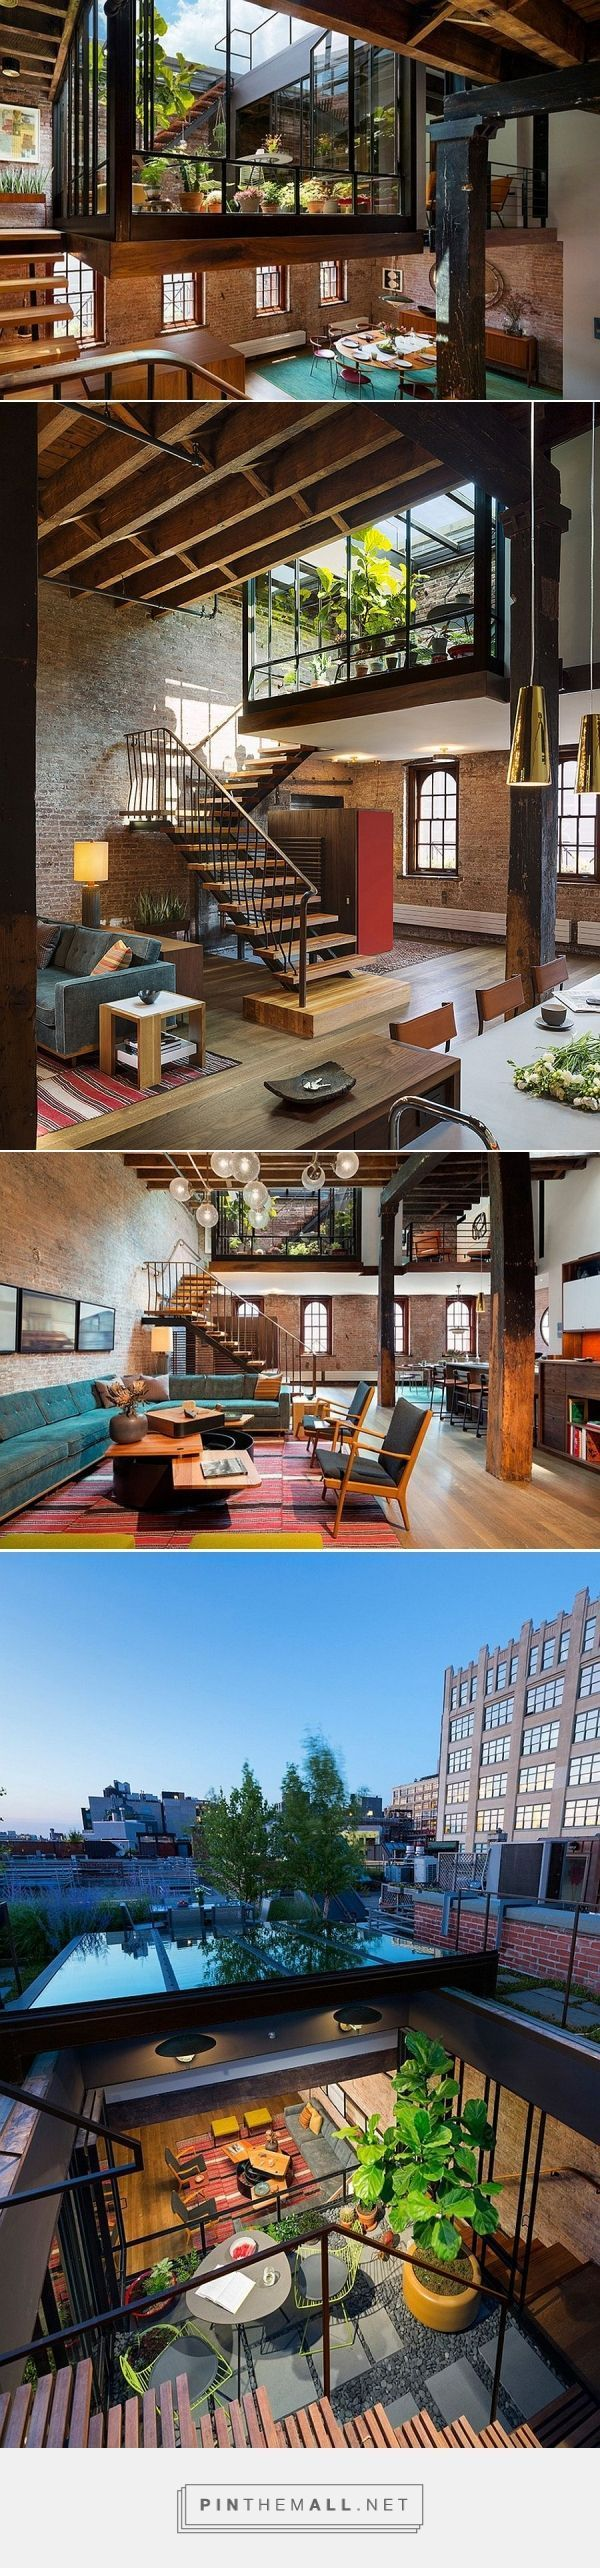 Old Caviar Warehouse Converted into a Sensational NYC Loft - garden space dropped down into the living space - created via http://pinthemall.net